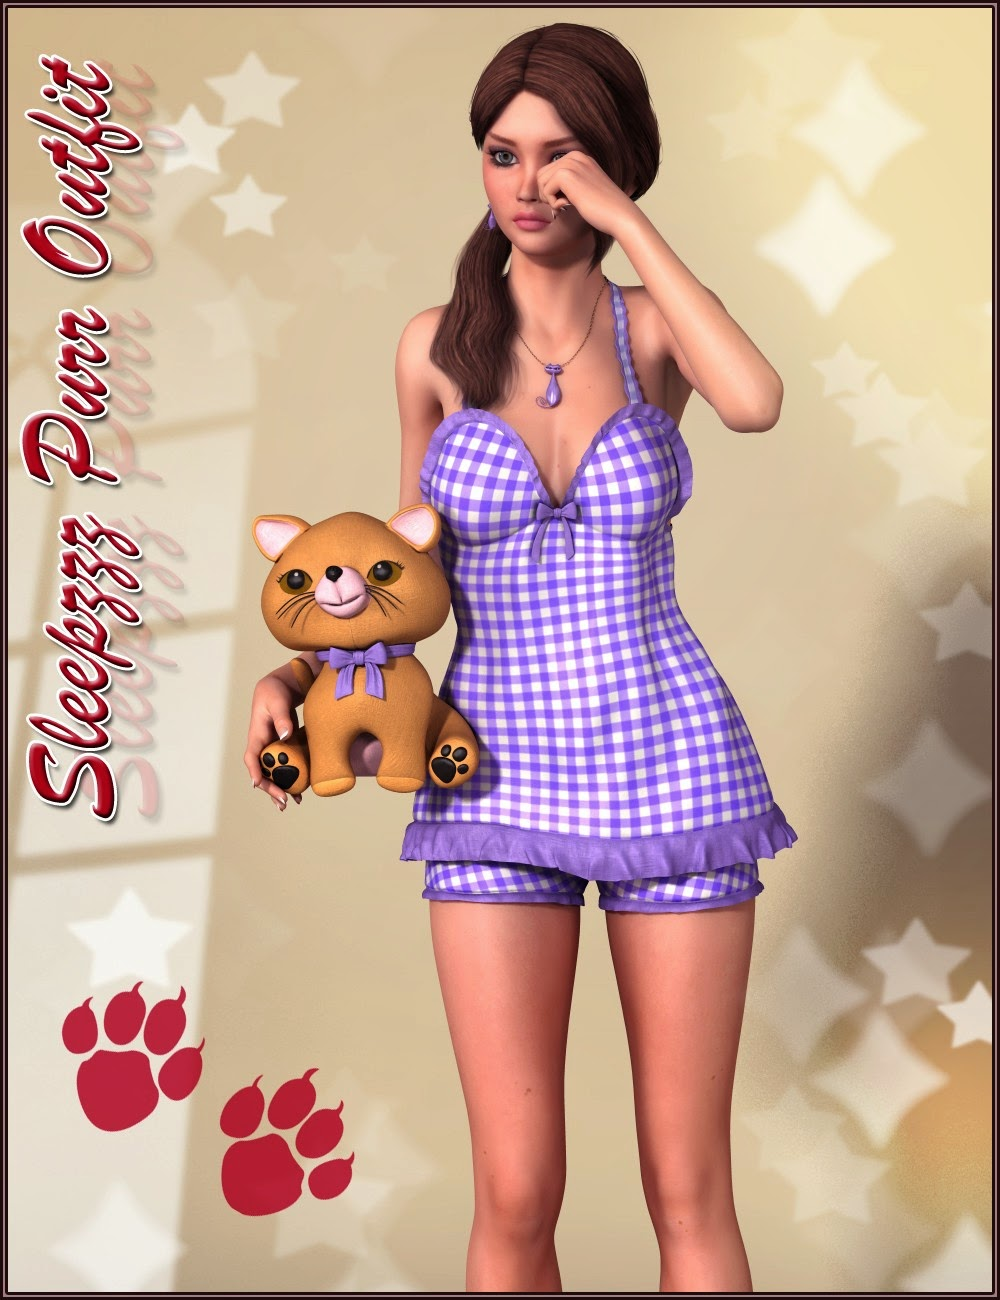 3d Models Art Zone - Sleepzzz Purr Outfit and Accessories